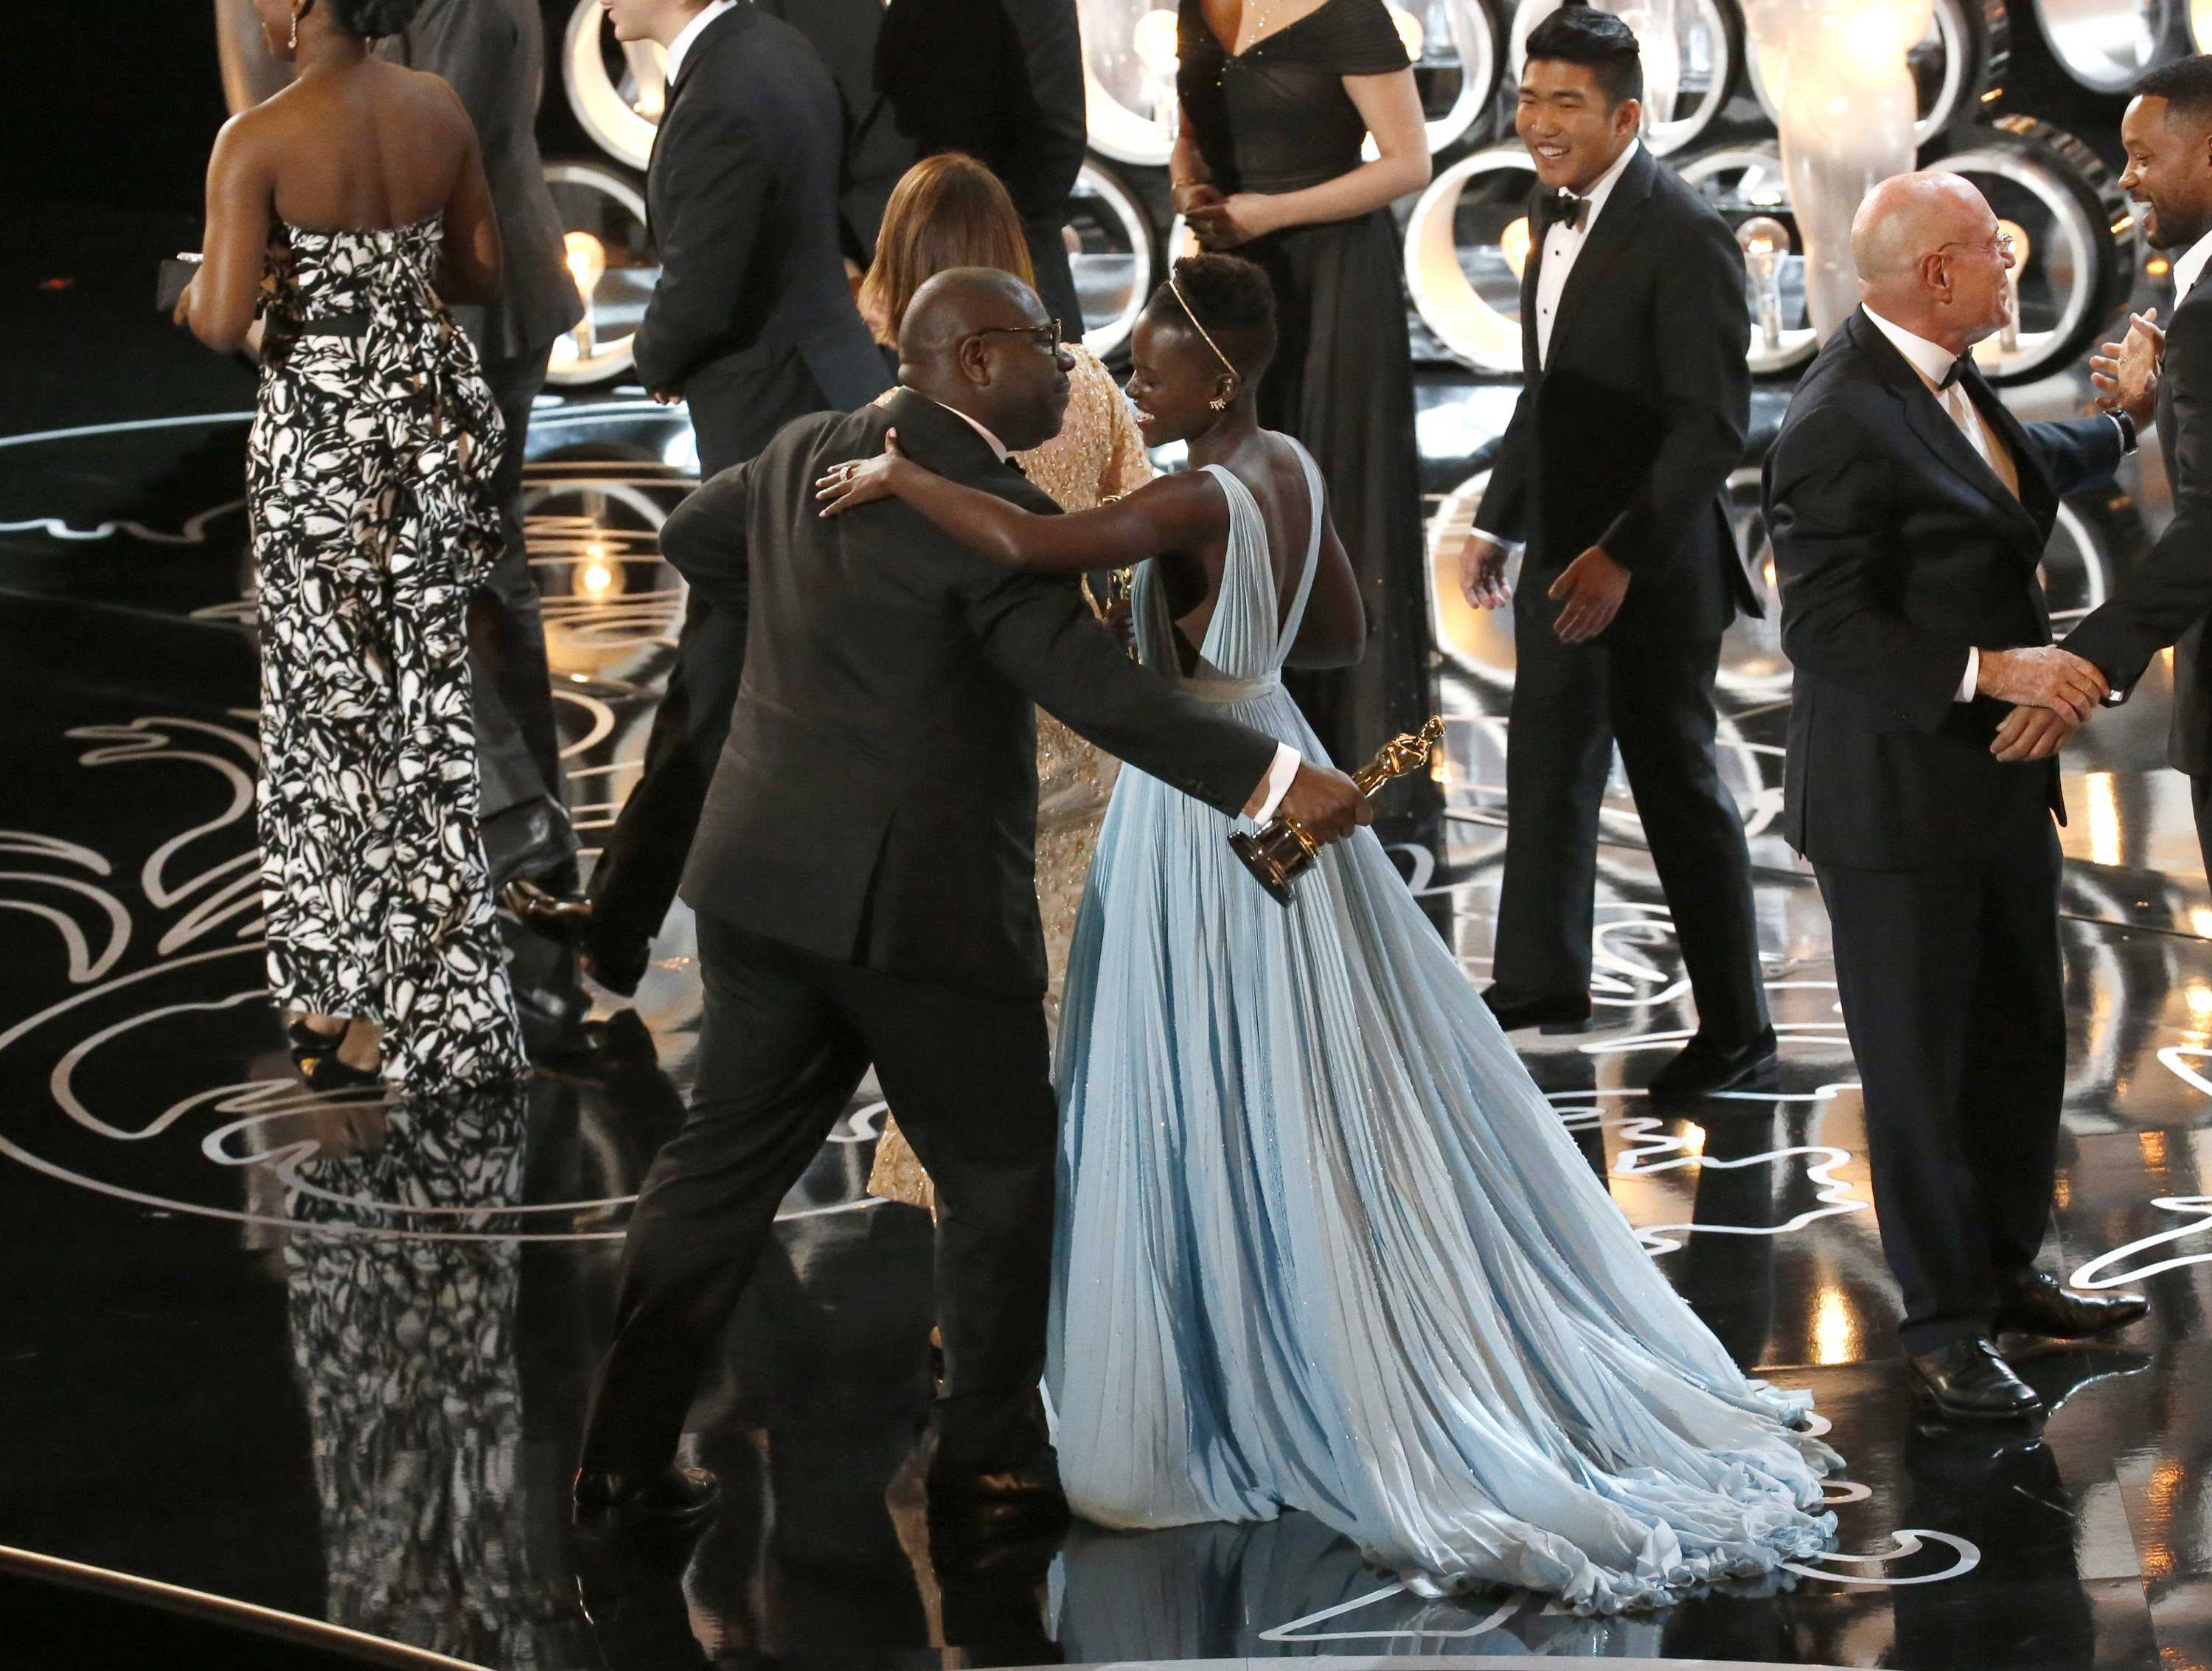 Steve McQueen leans in to kiss Lupita N'yongo as